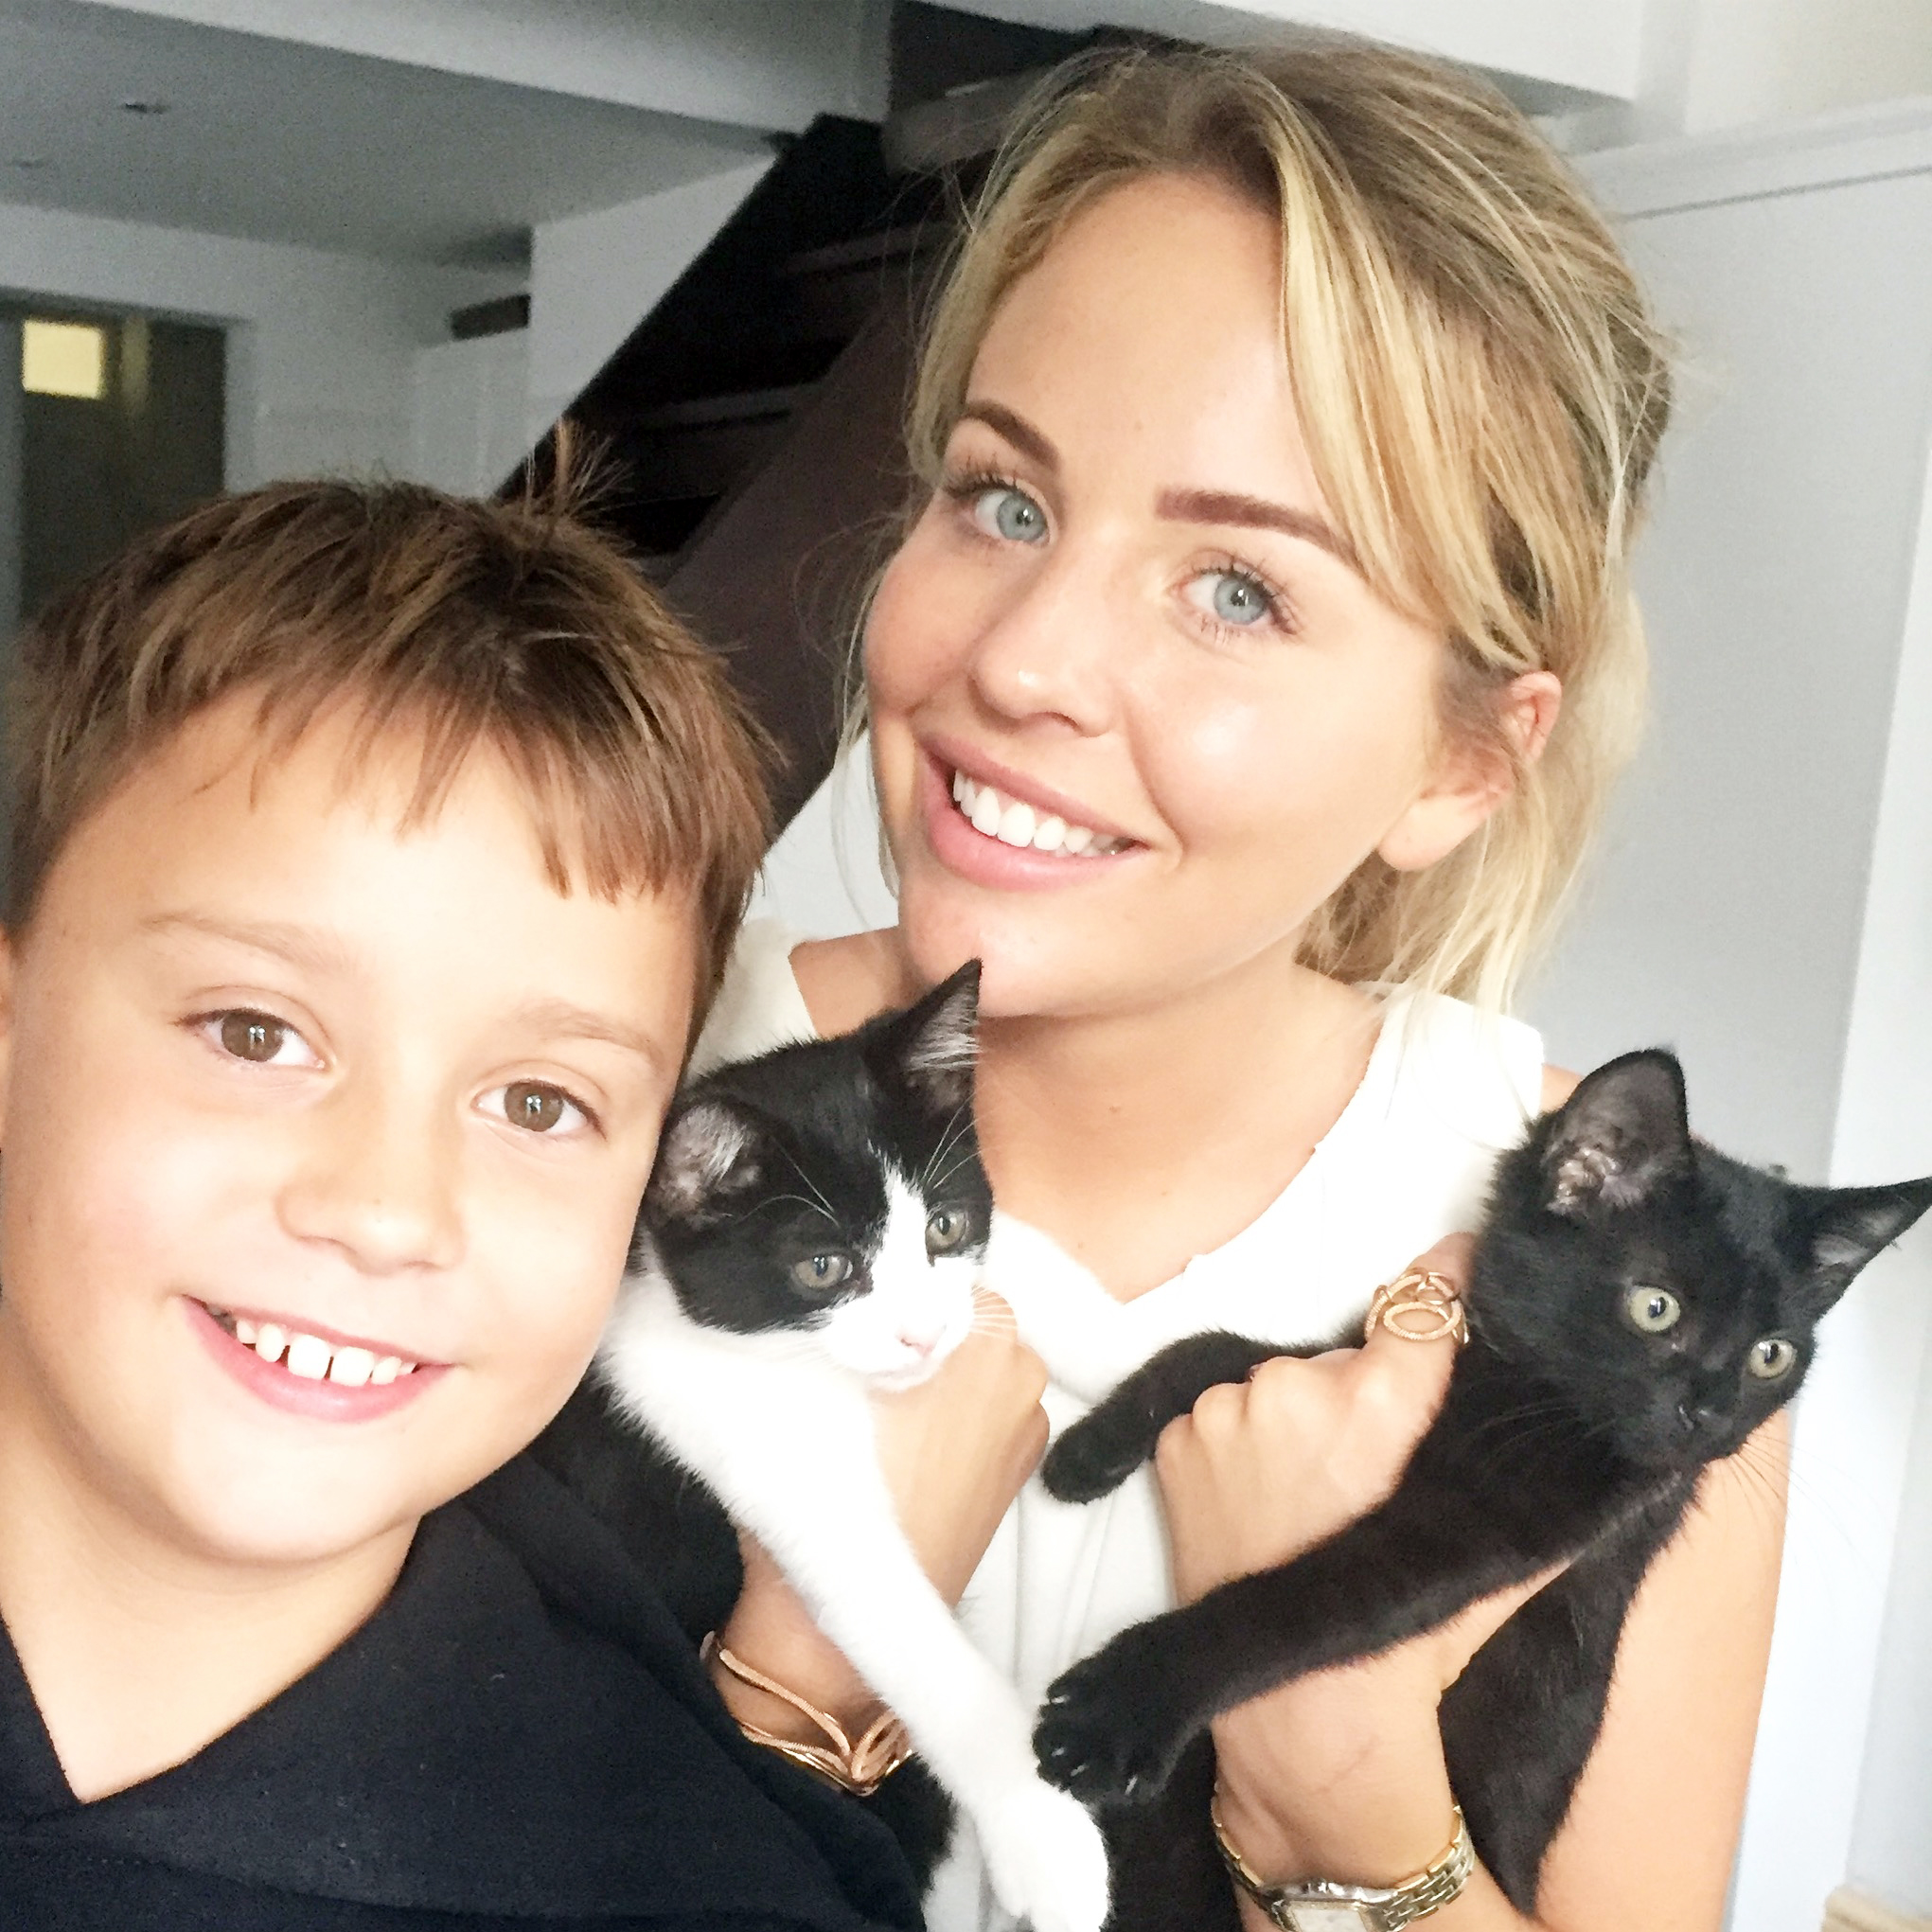 Ben Sutton &Lydia Bright having cuddles with the super-cute kittens